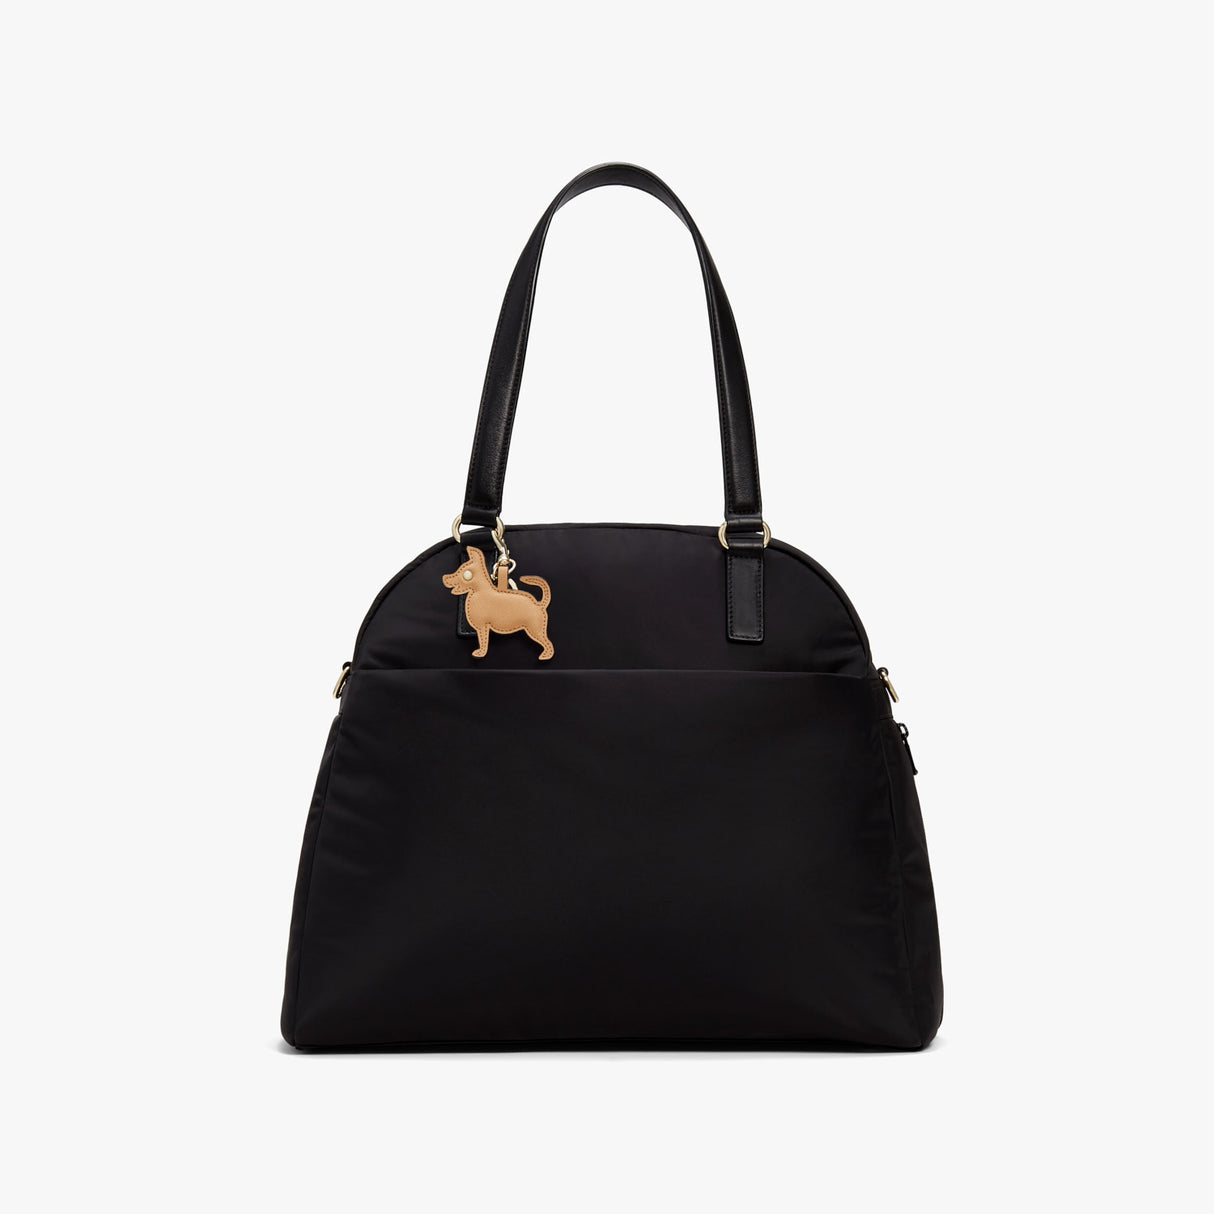 On Bag - Year of the Dog Charm - Saffiano Leather - Sand - Small Accessory - Lo & Sons